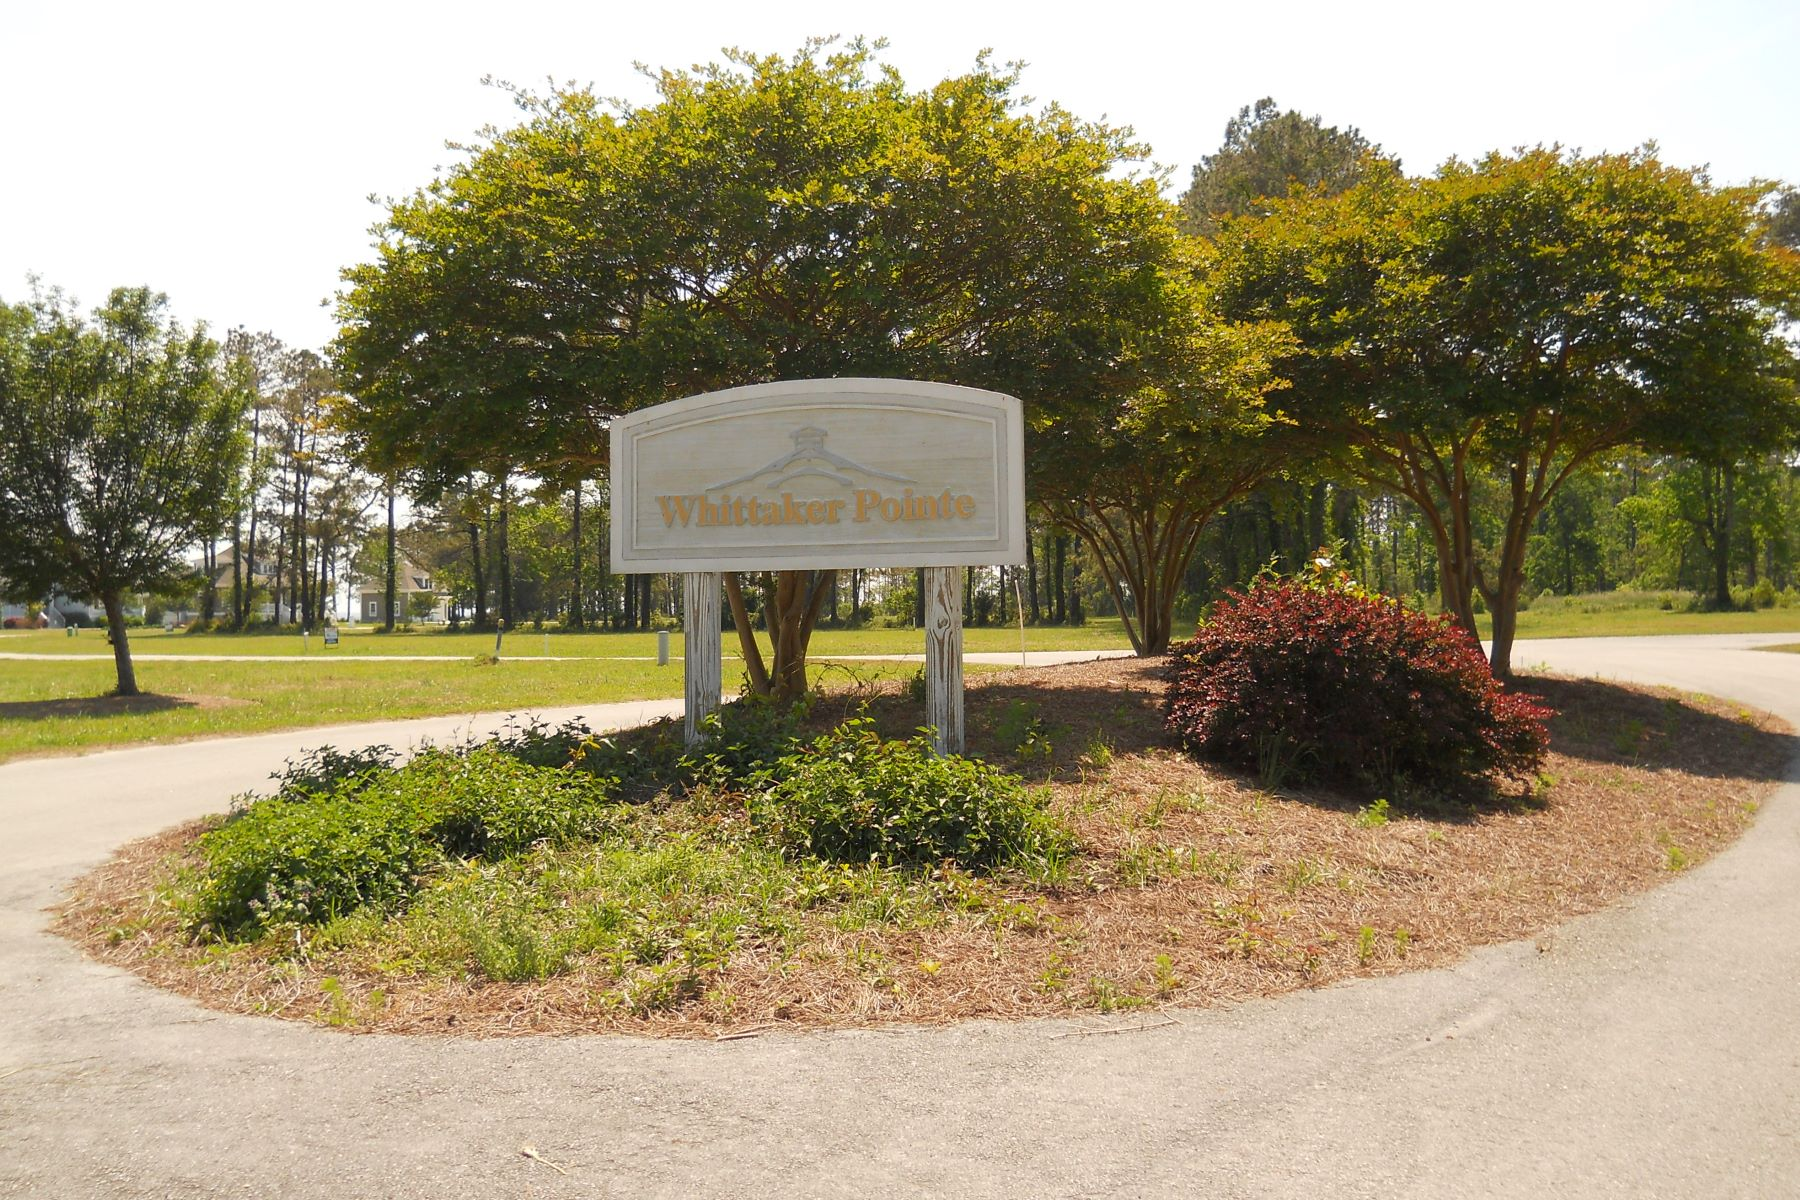 Land for Sale at Whittaker Pointe 3003 Maritime Dr Oriental, North Carolina, 28571 United States